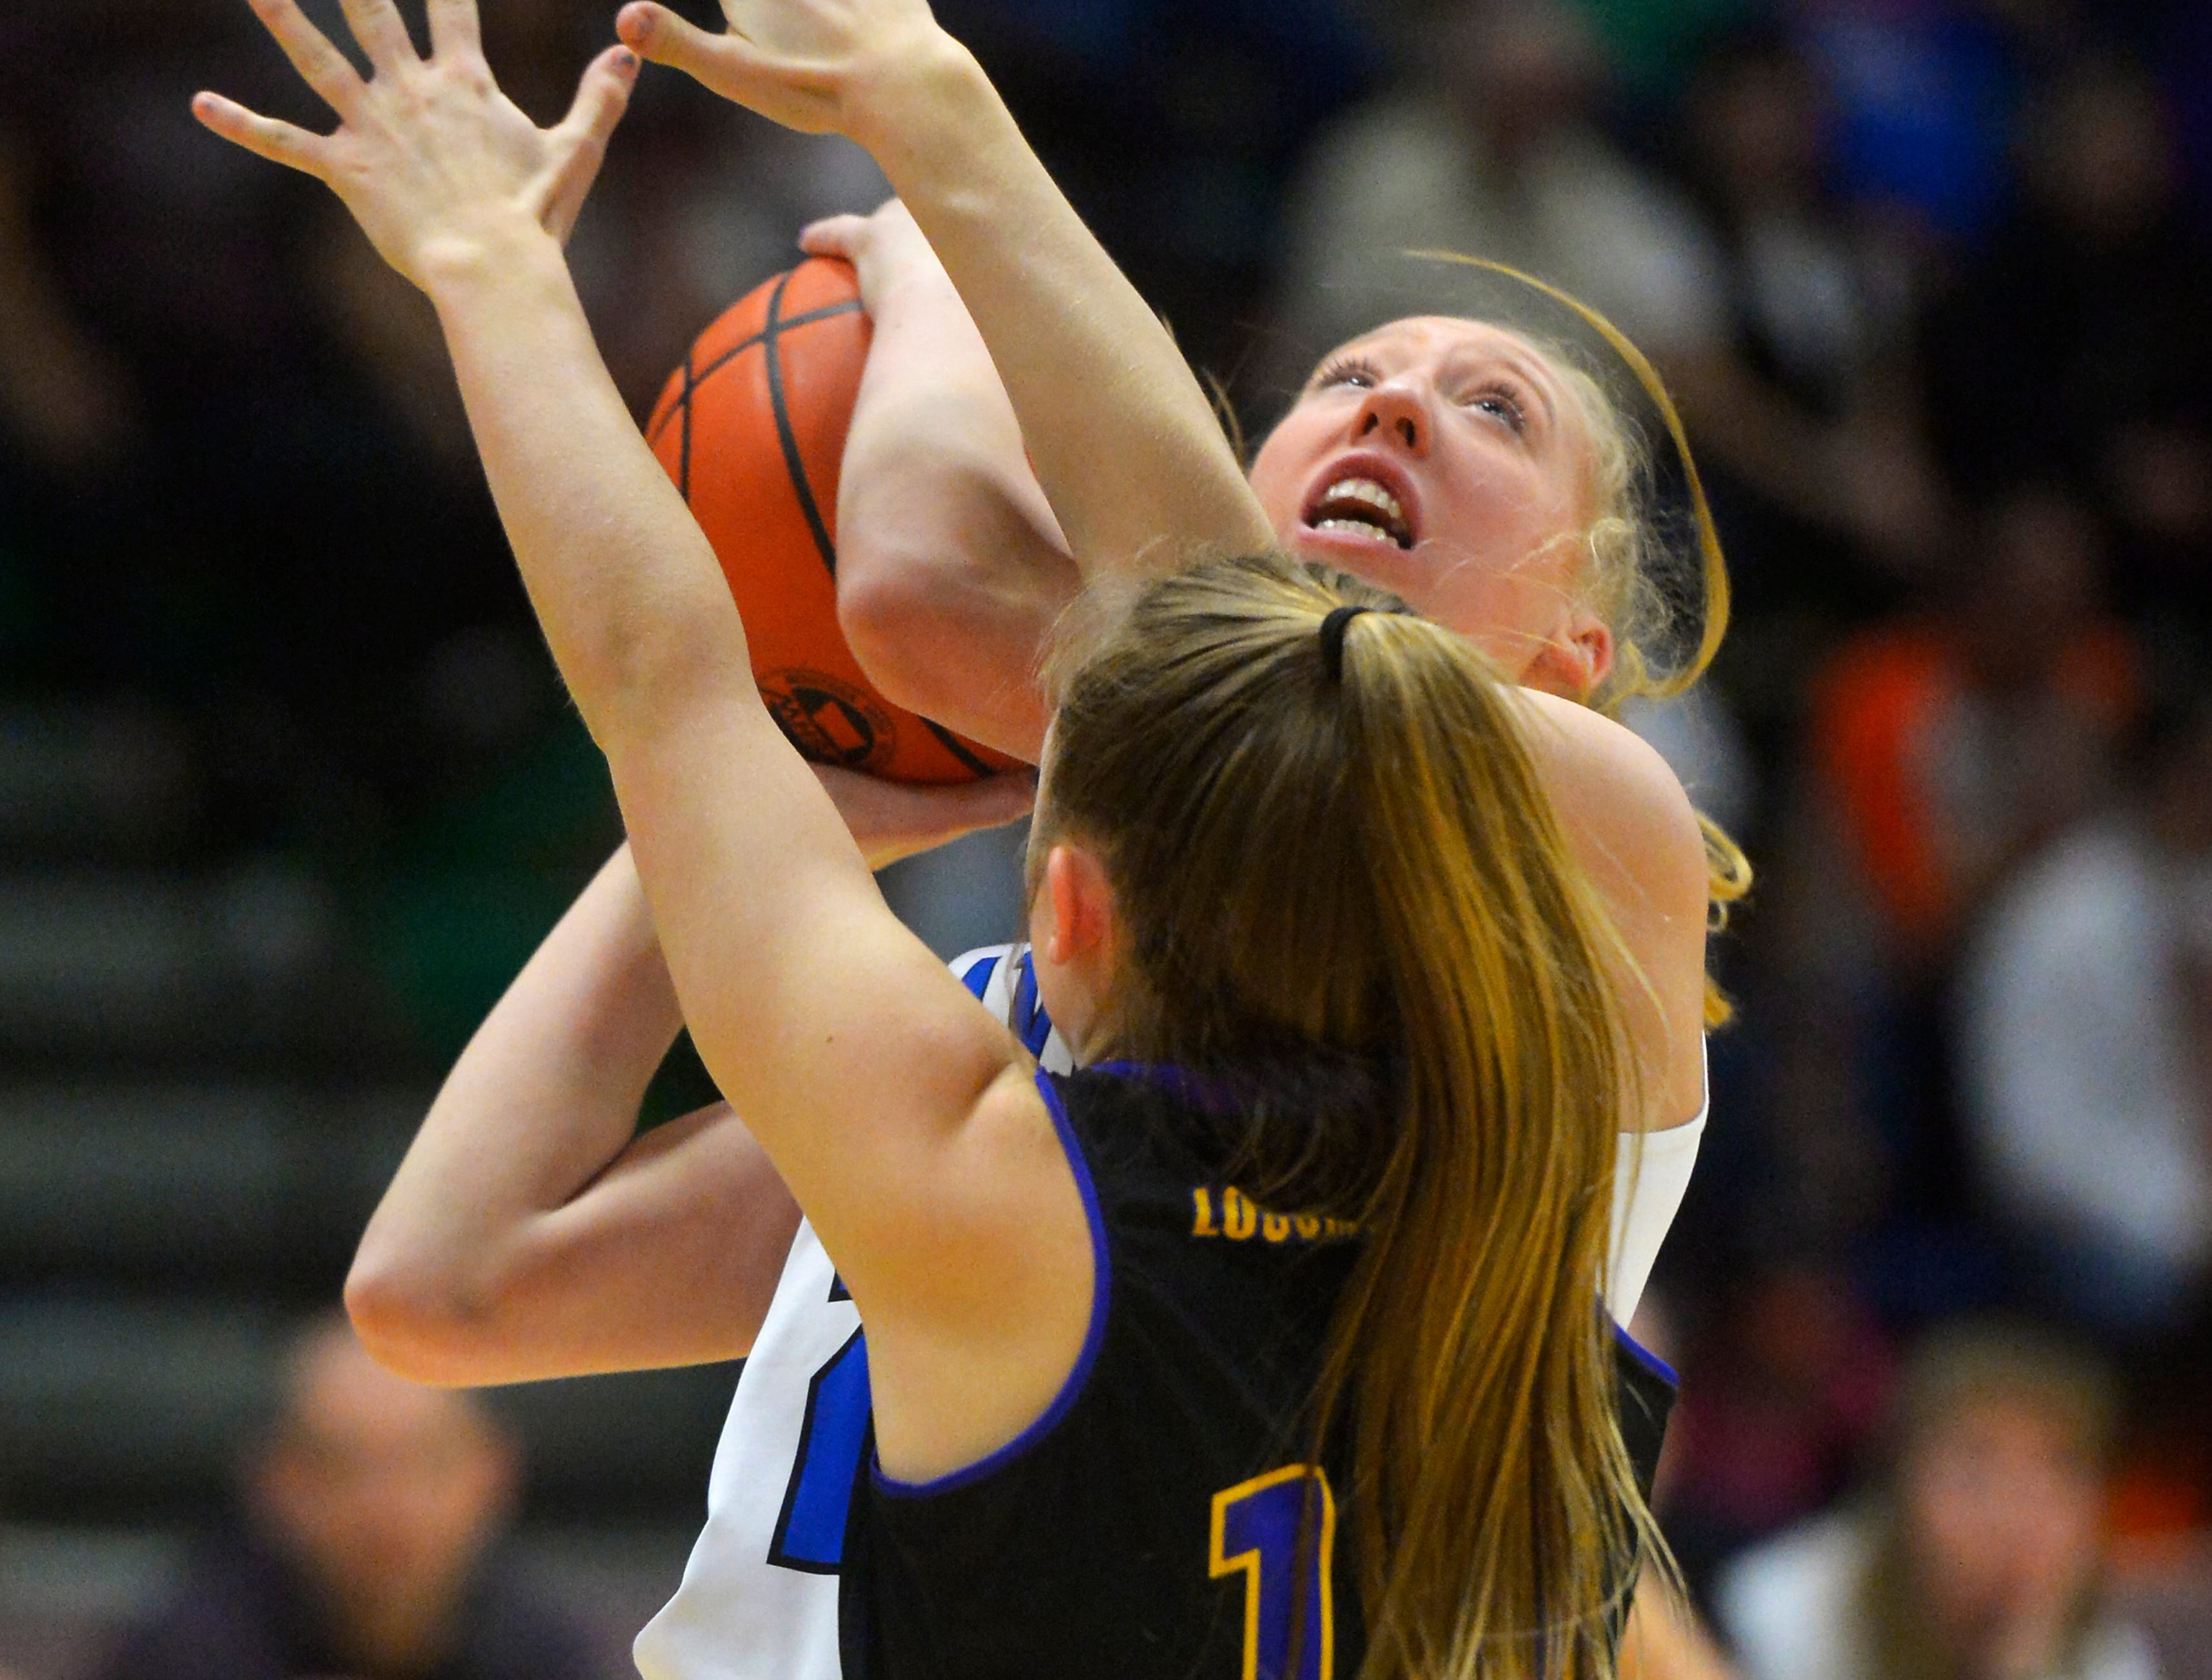 Havre's Kadia Miller shoots in Friday's semifinal game against Laurel during the State Class A Basketball Tournament in the Four Seasons Arena.